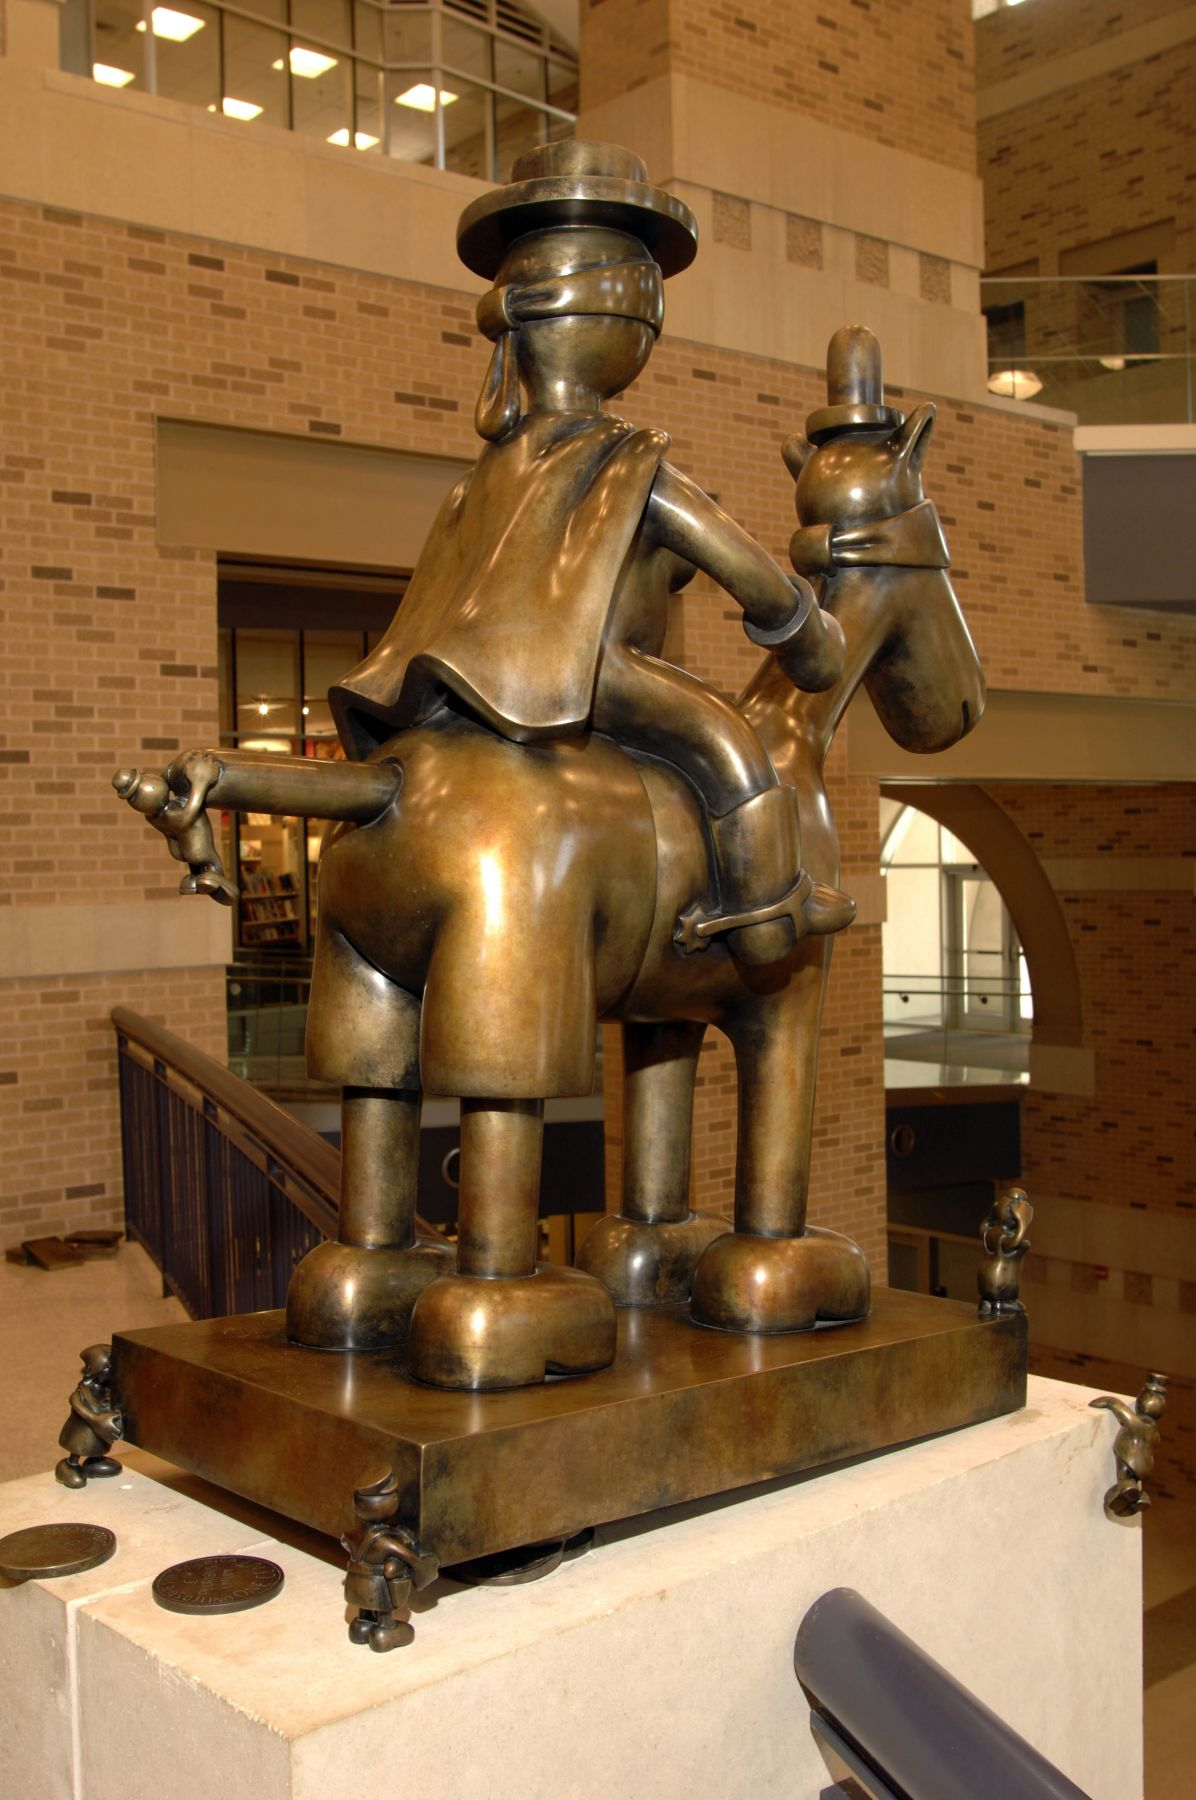 Horse and Rider,Texas Tech University, Student Union, Lubbock, TX